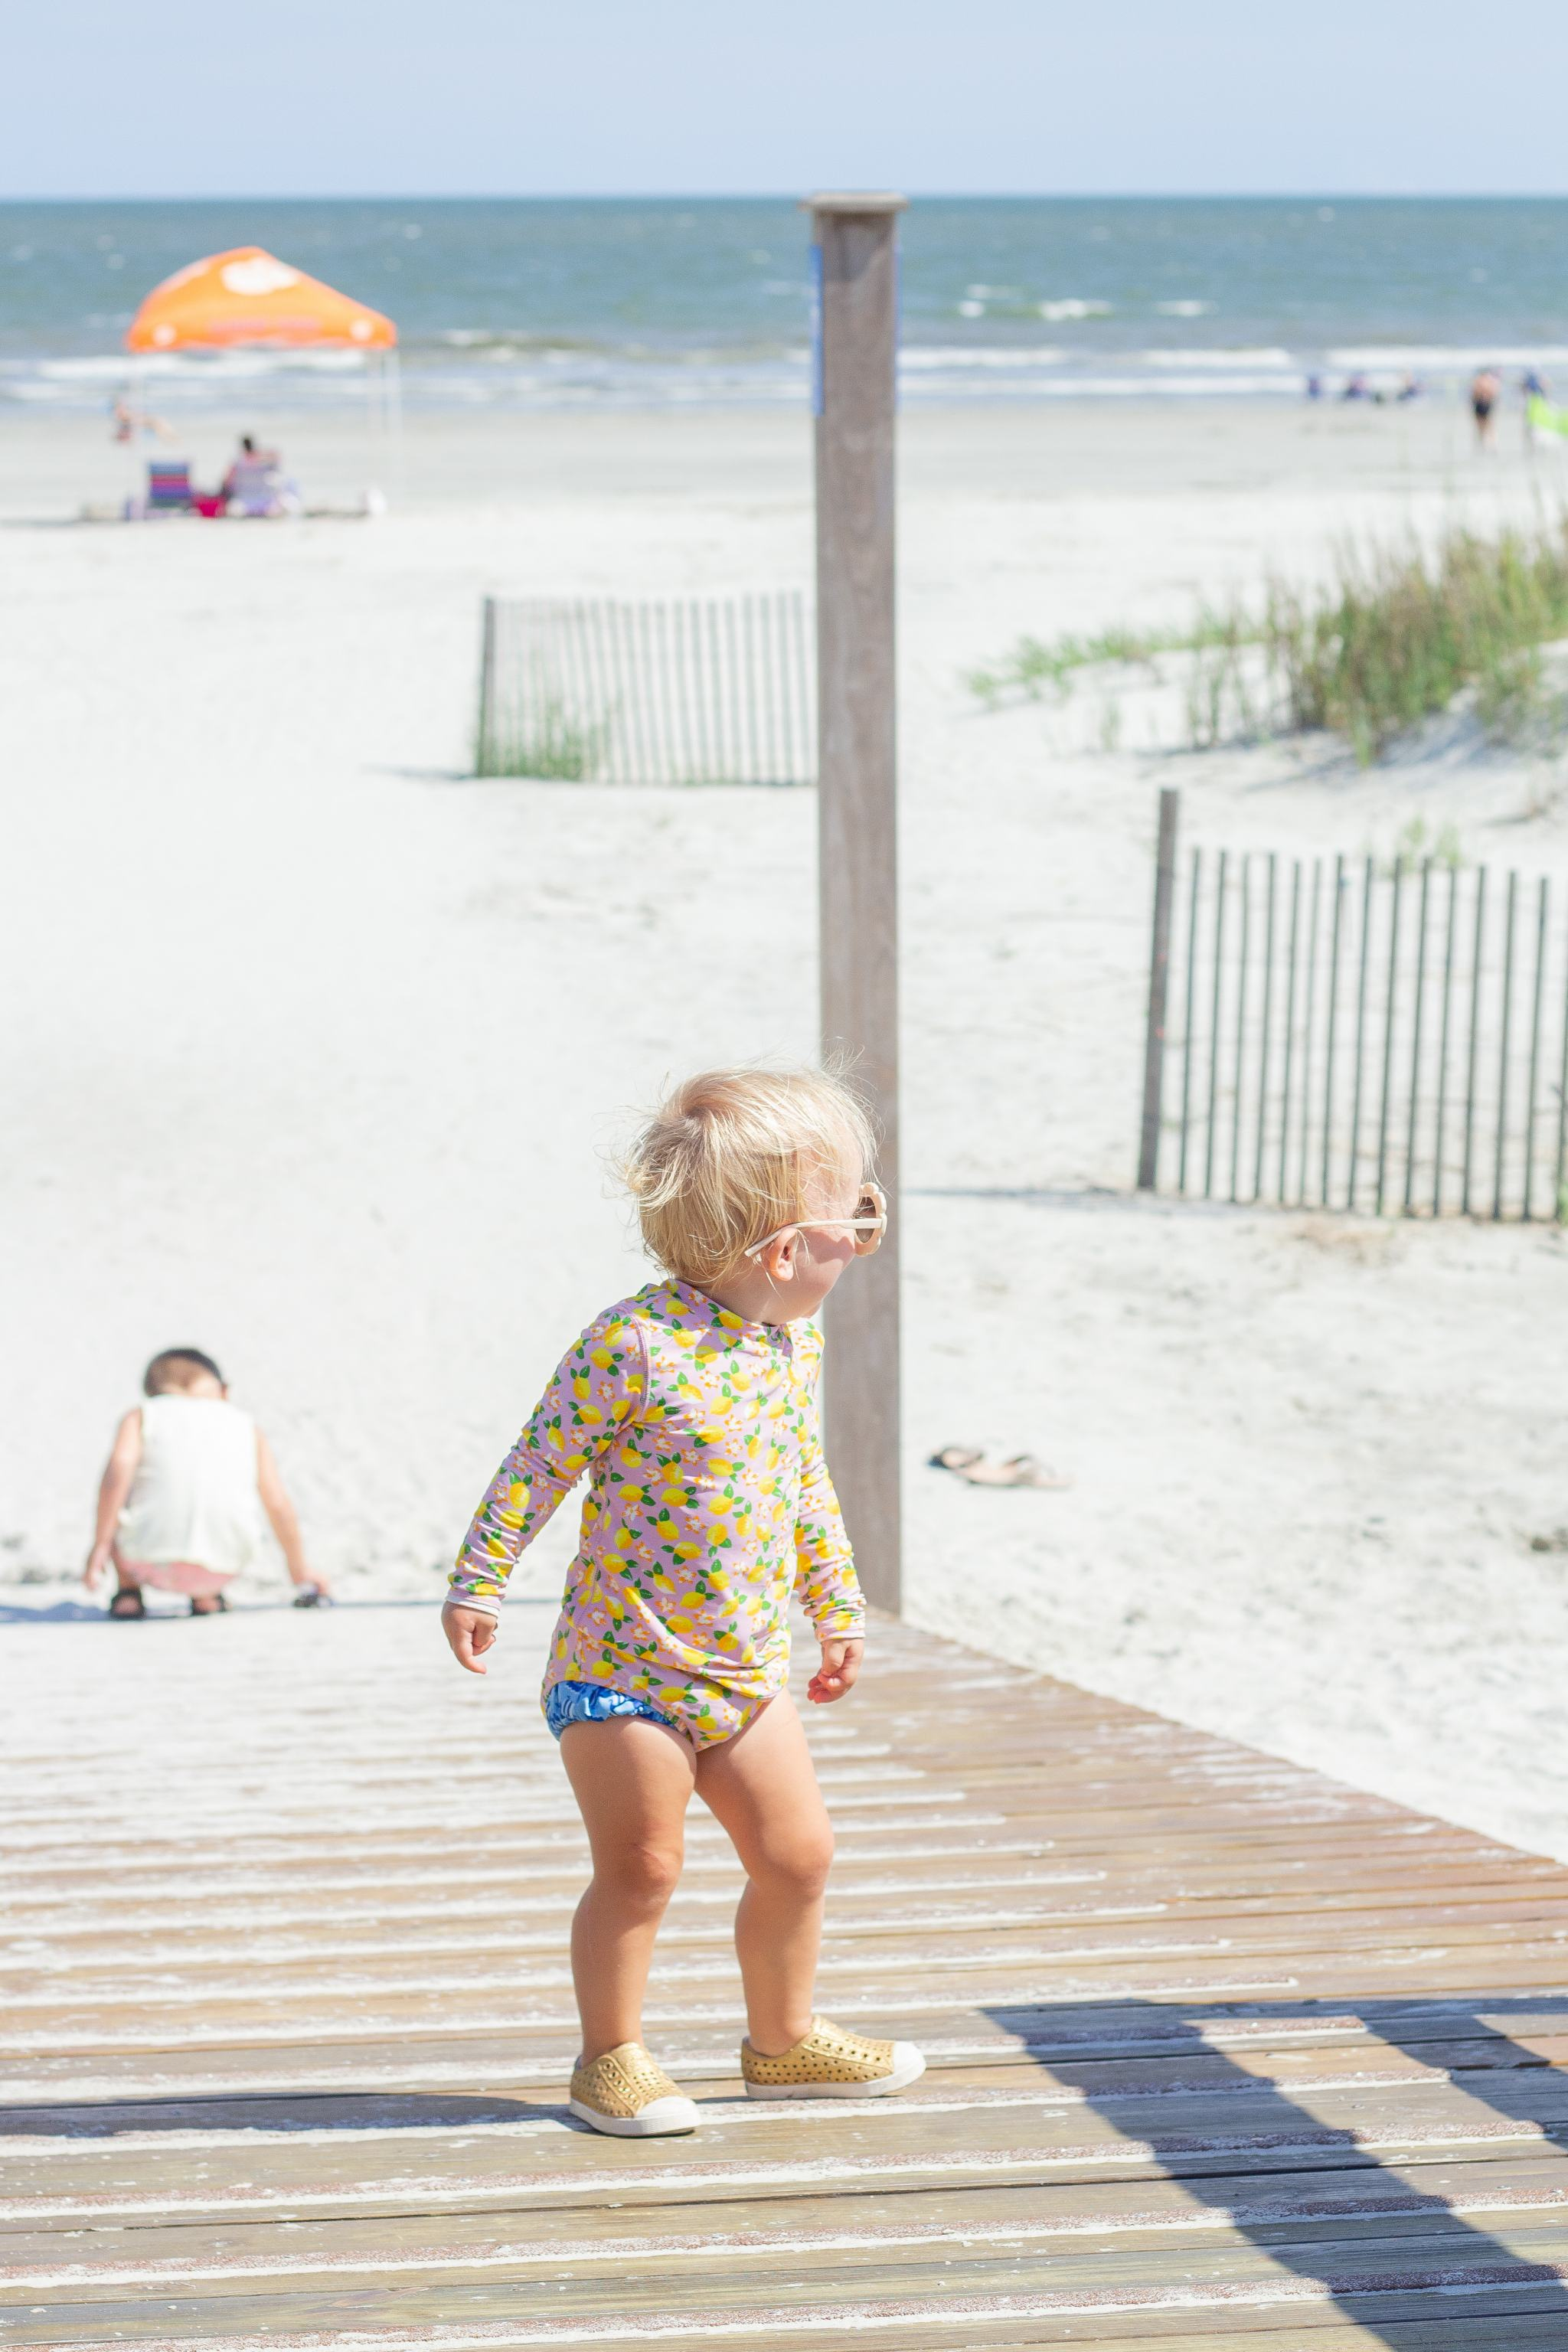 fripp island - south carolina - lowcountry - family beach vacation - jcrew factory lemon swimsuit - daisy sunglasses - flower sunglasses - father daughter picture - toddler girl style